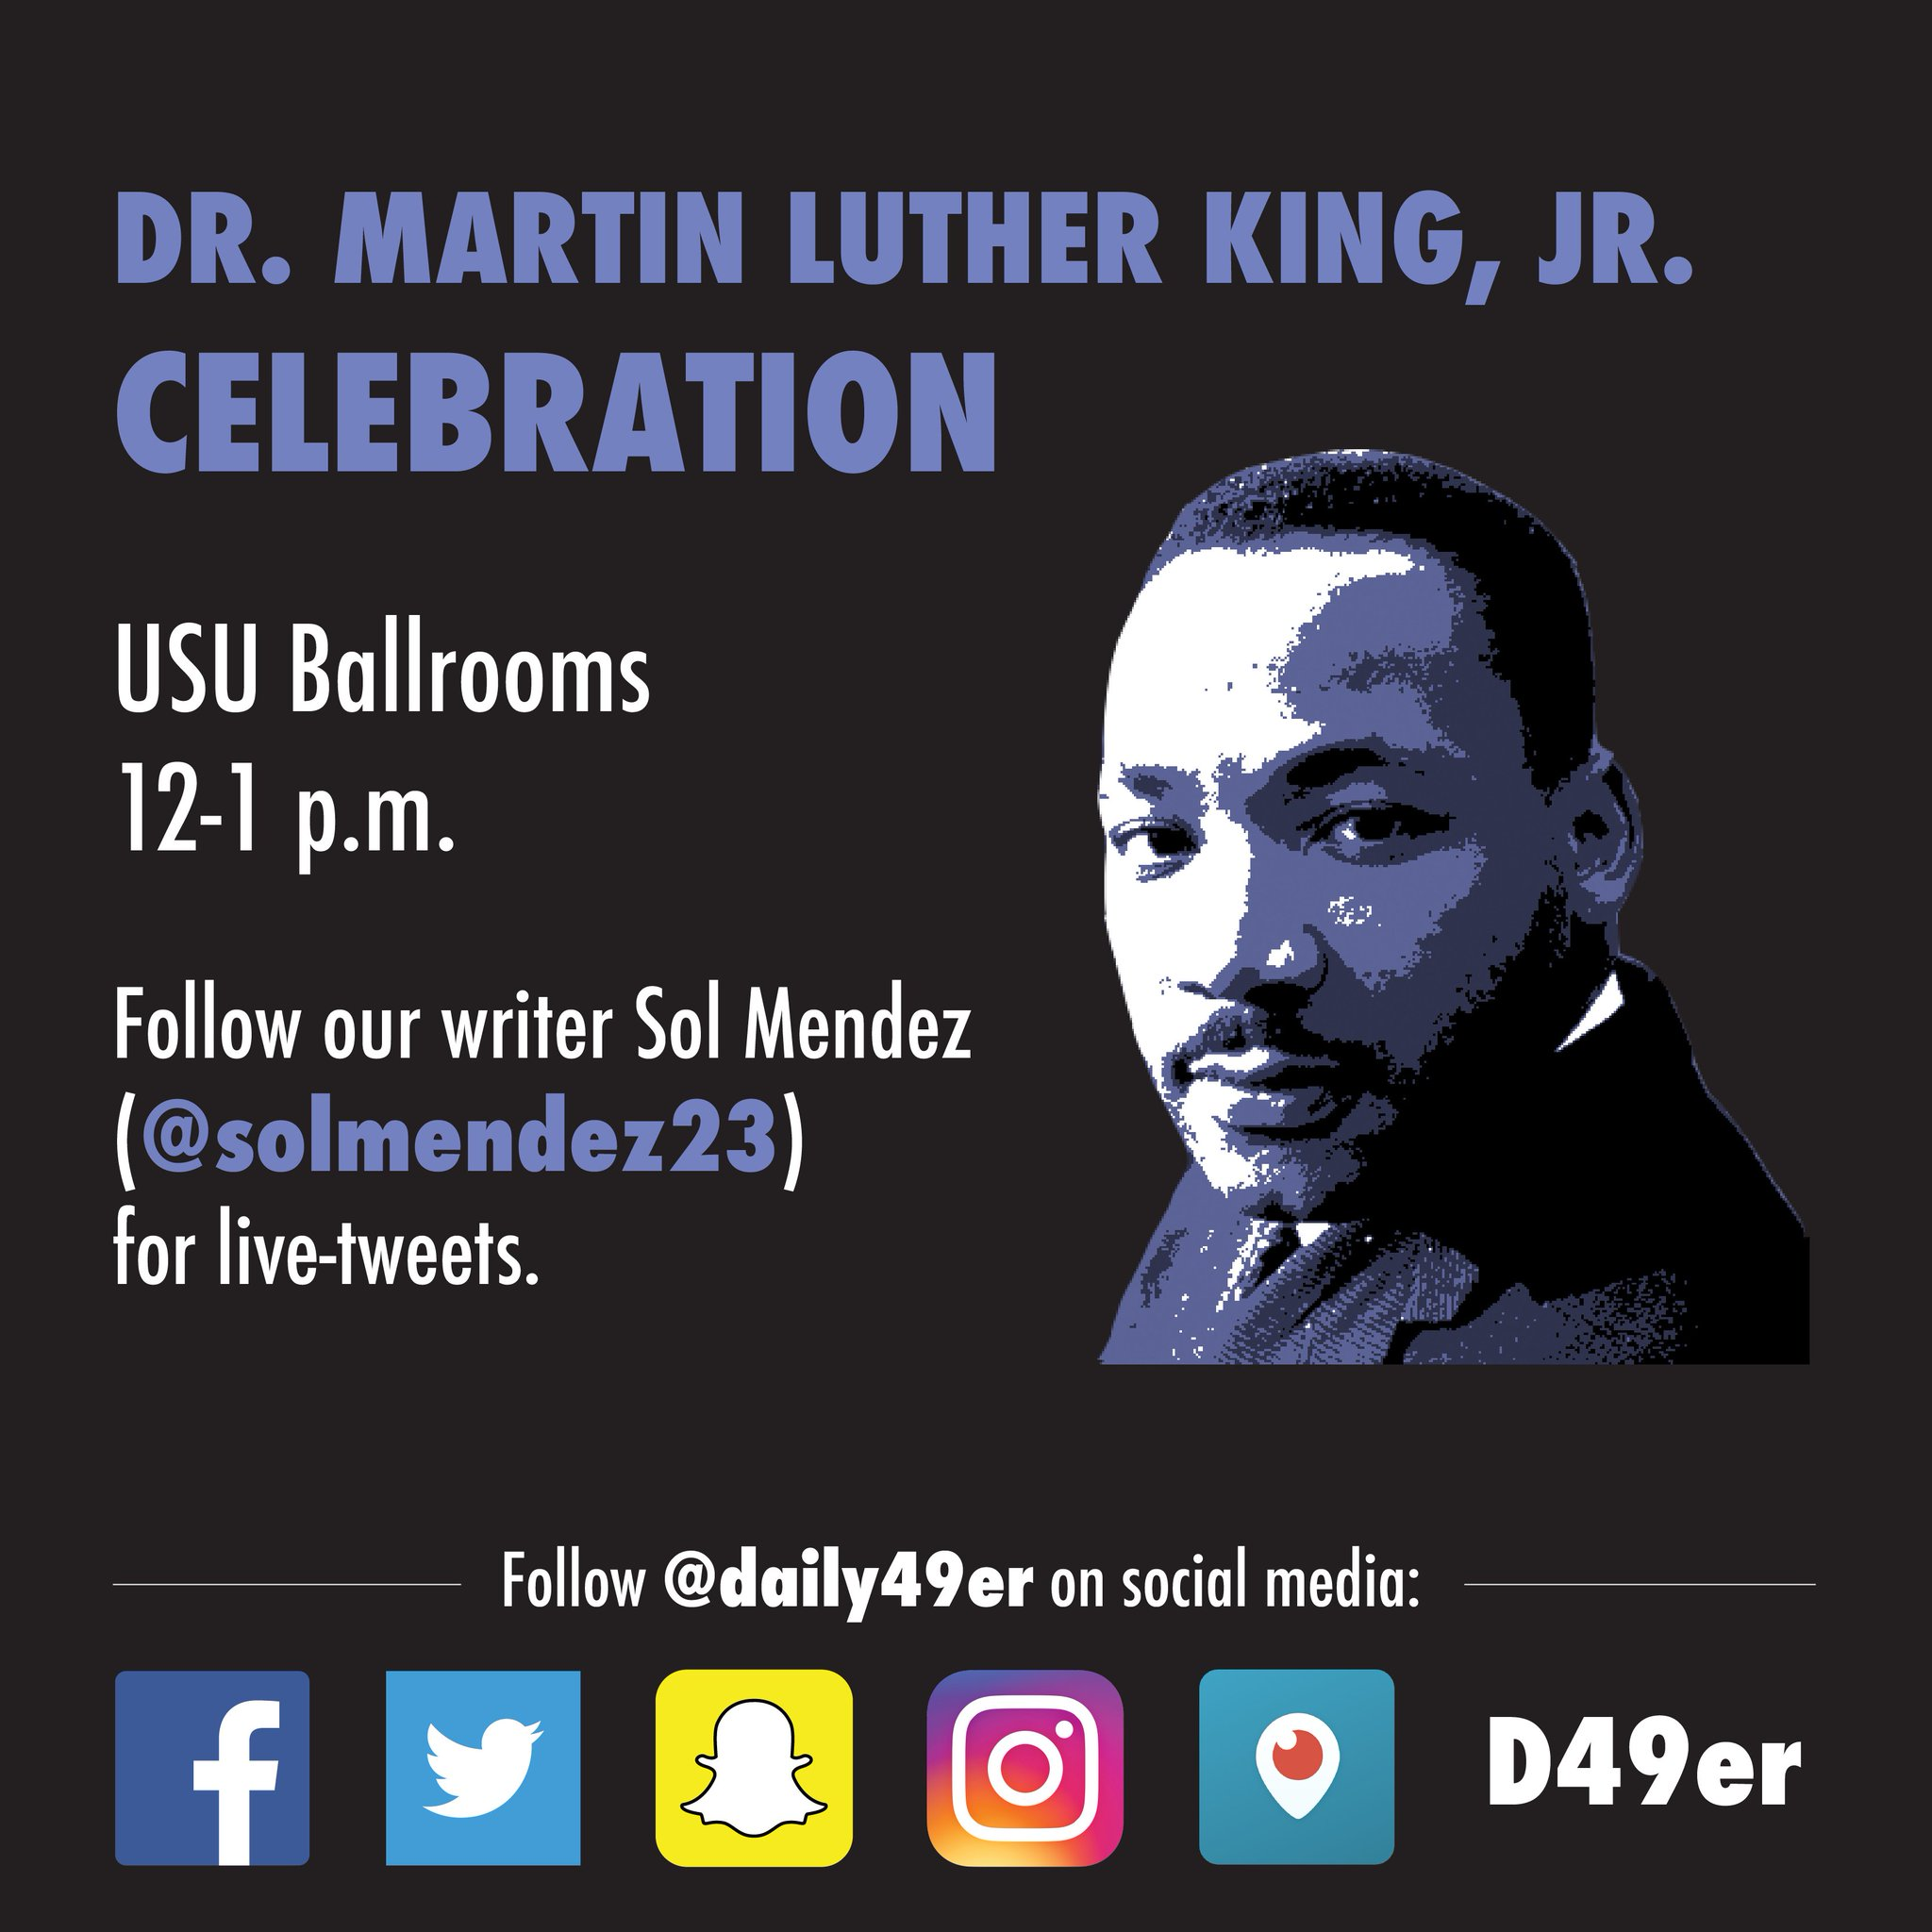 Follow @SolMendez23 for live-tweets from the Martin Luther King Celebration today at 12 p.m. #MLK #CSULB #49erNow https://t.co/BFkL757Spt